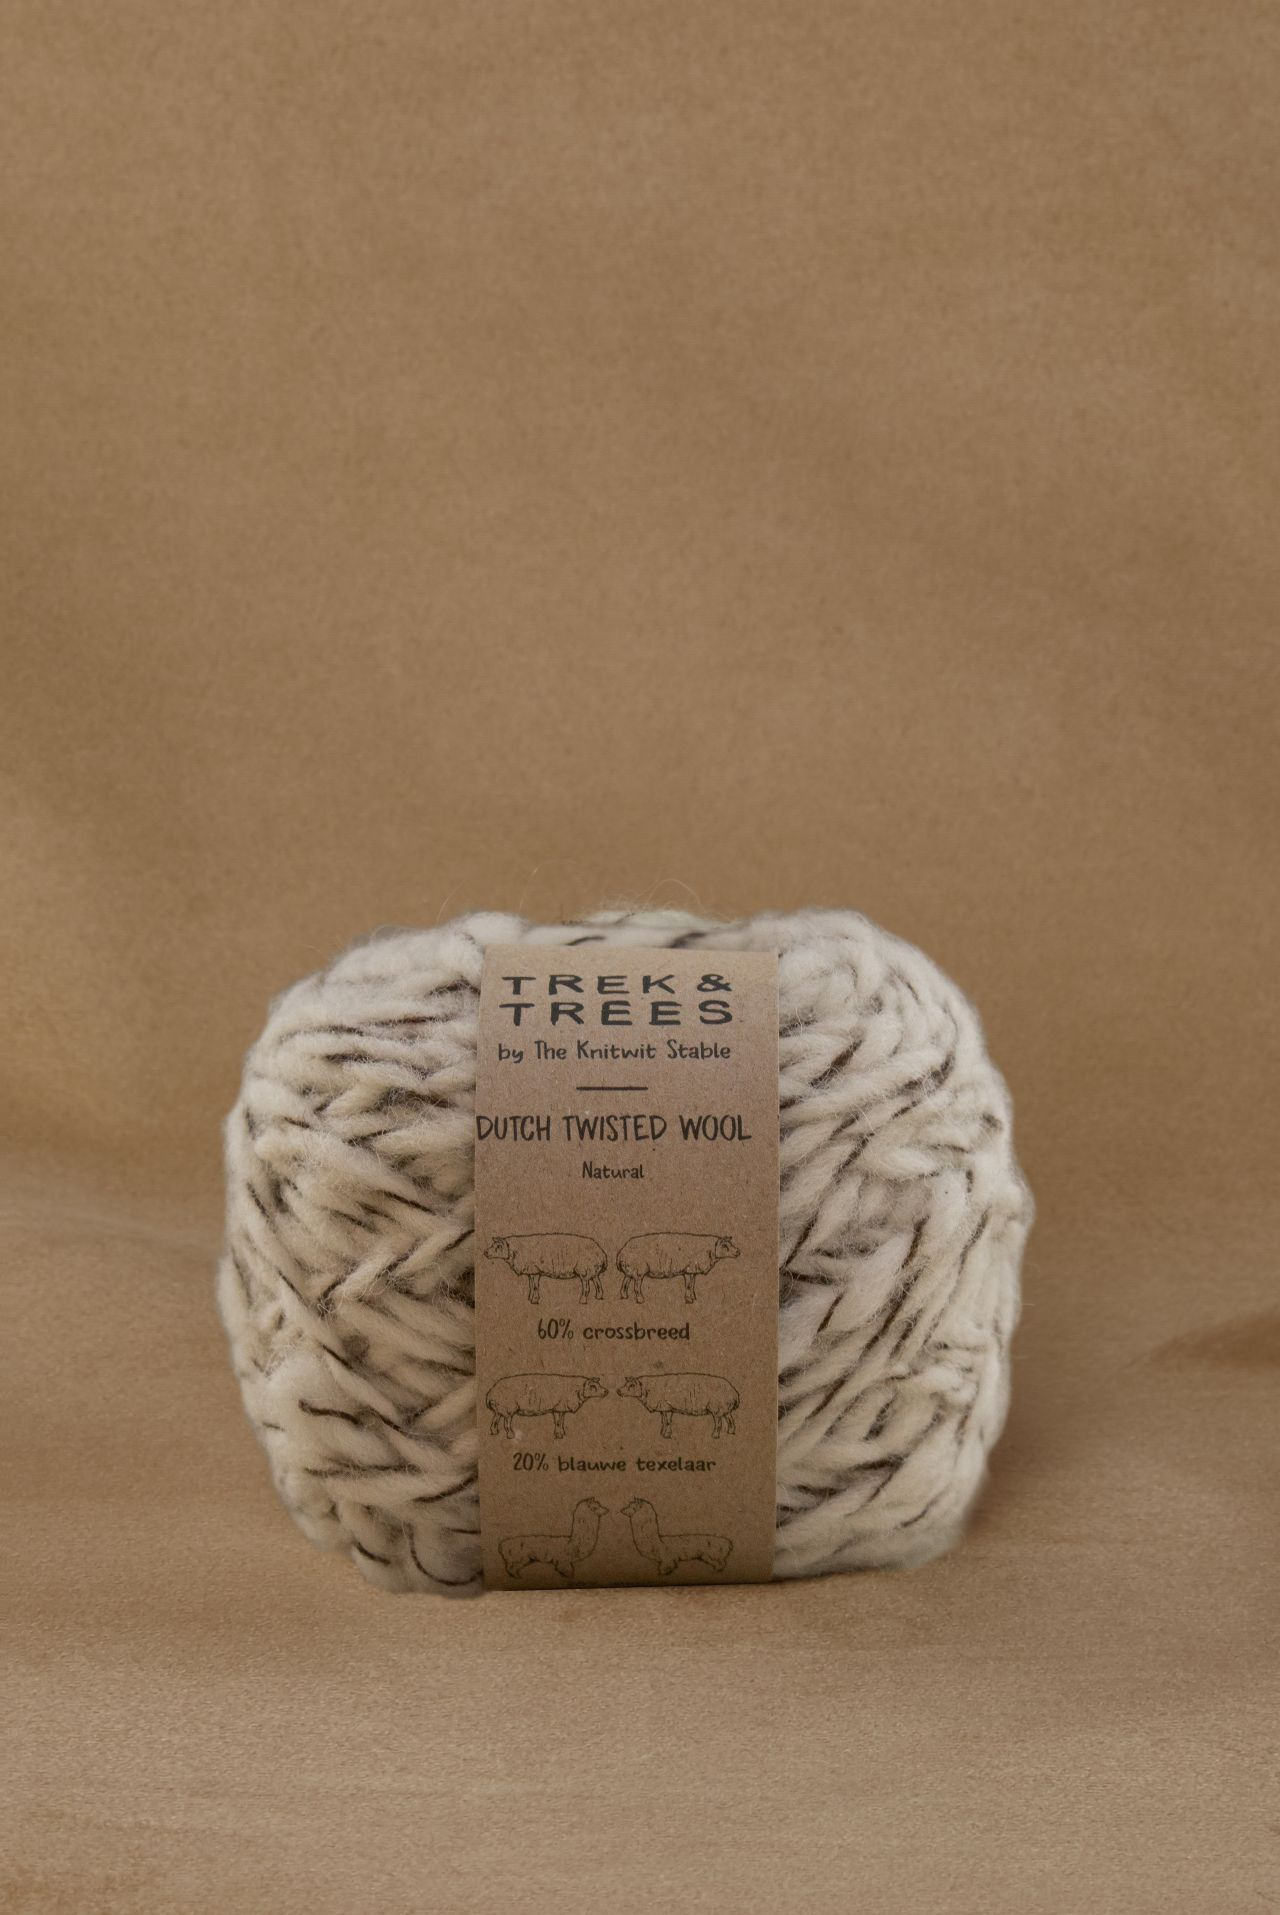 Dutch twisted wool yarn.